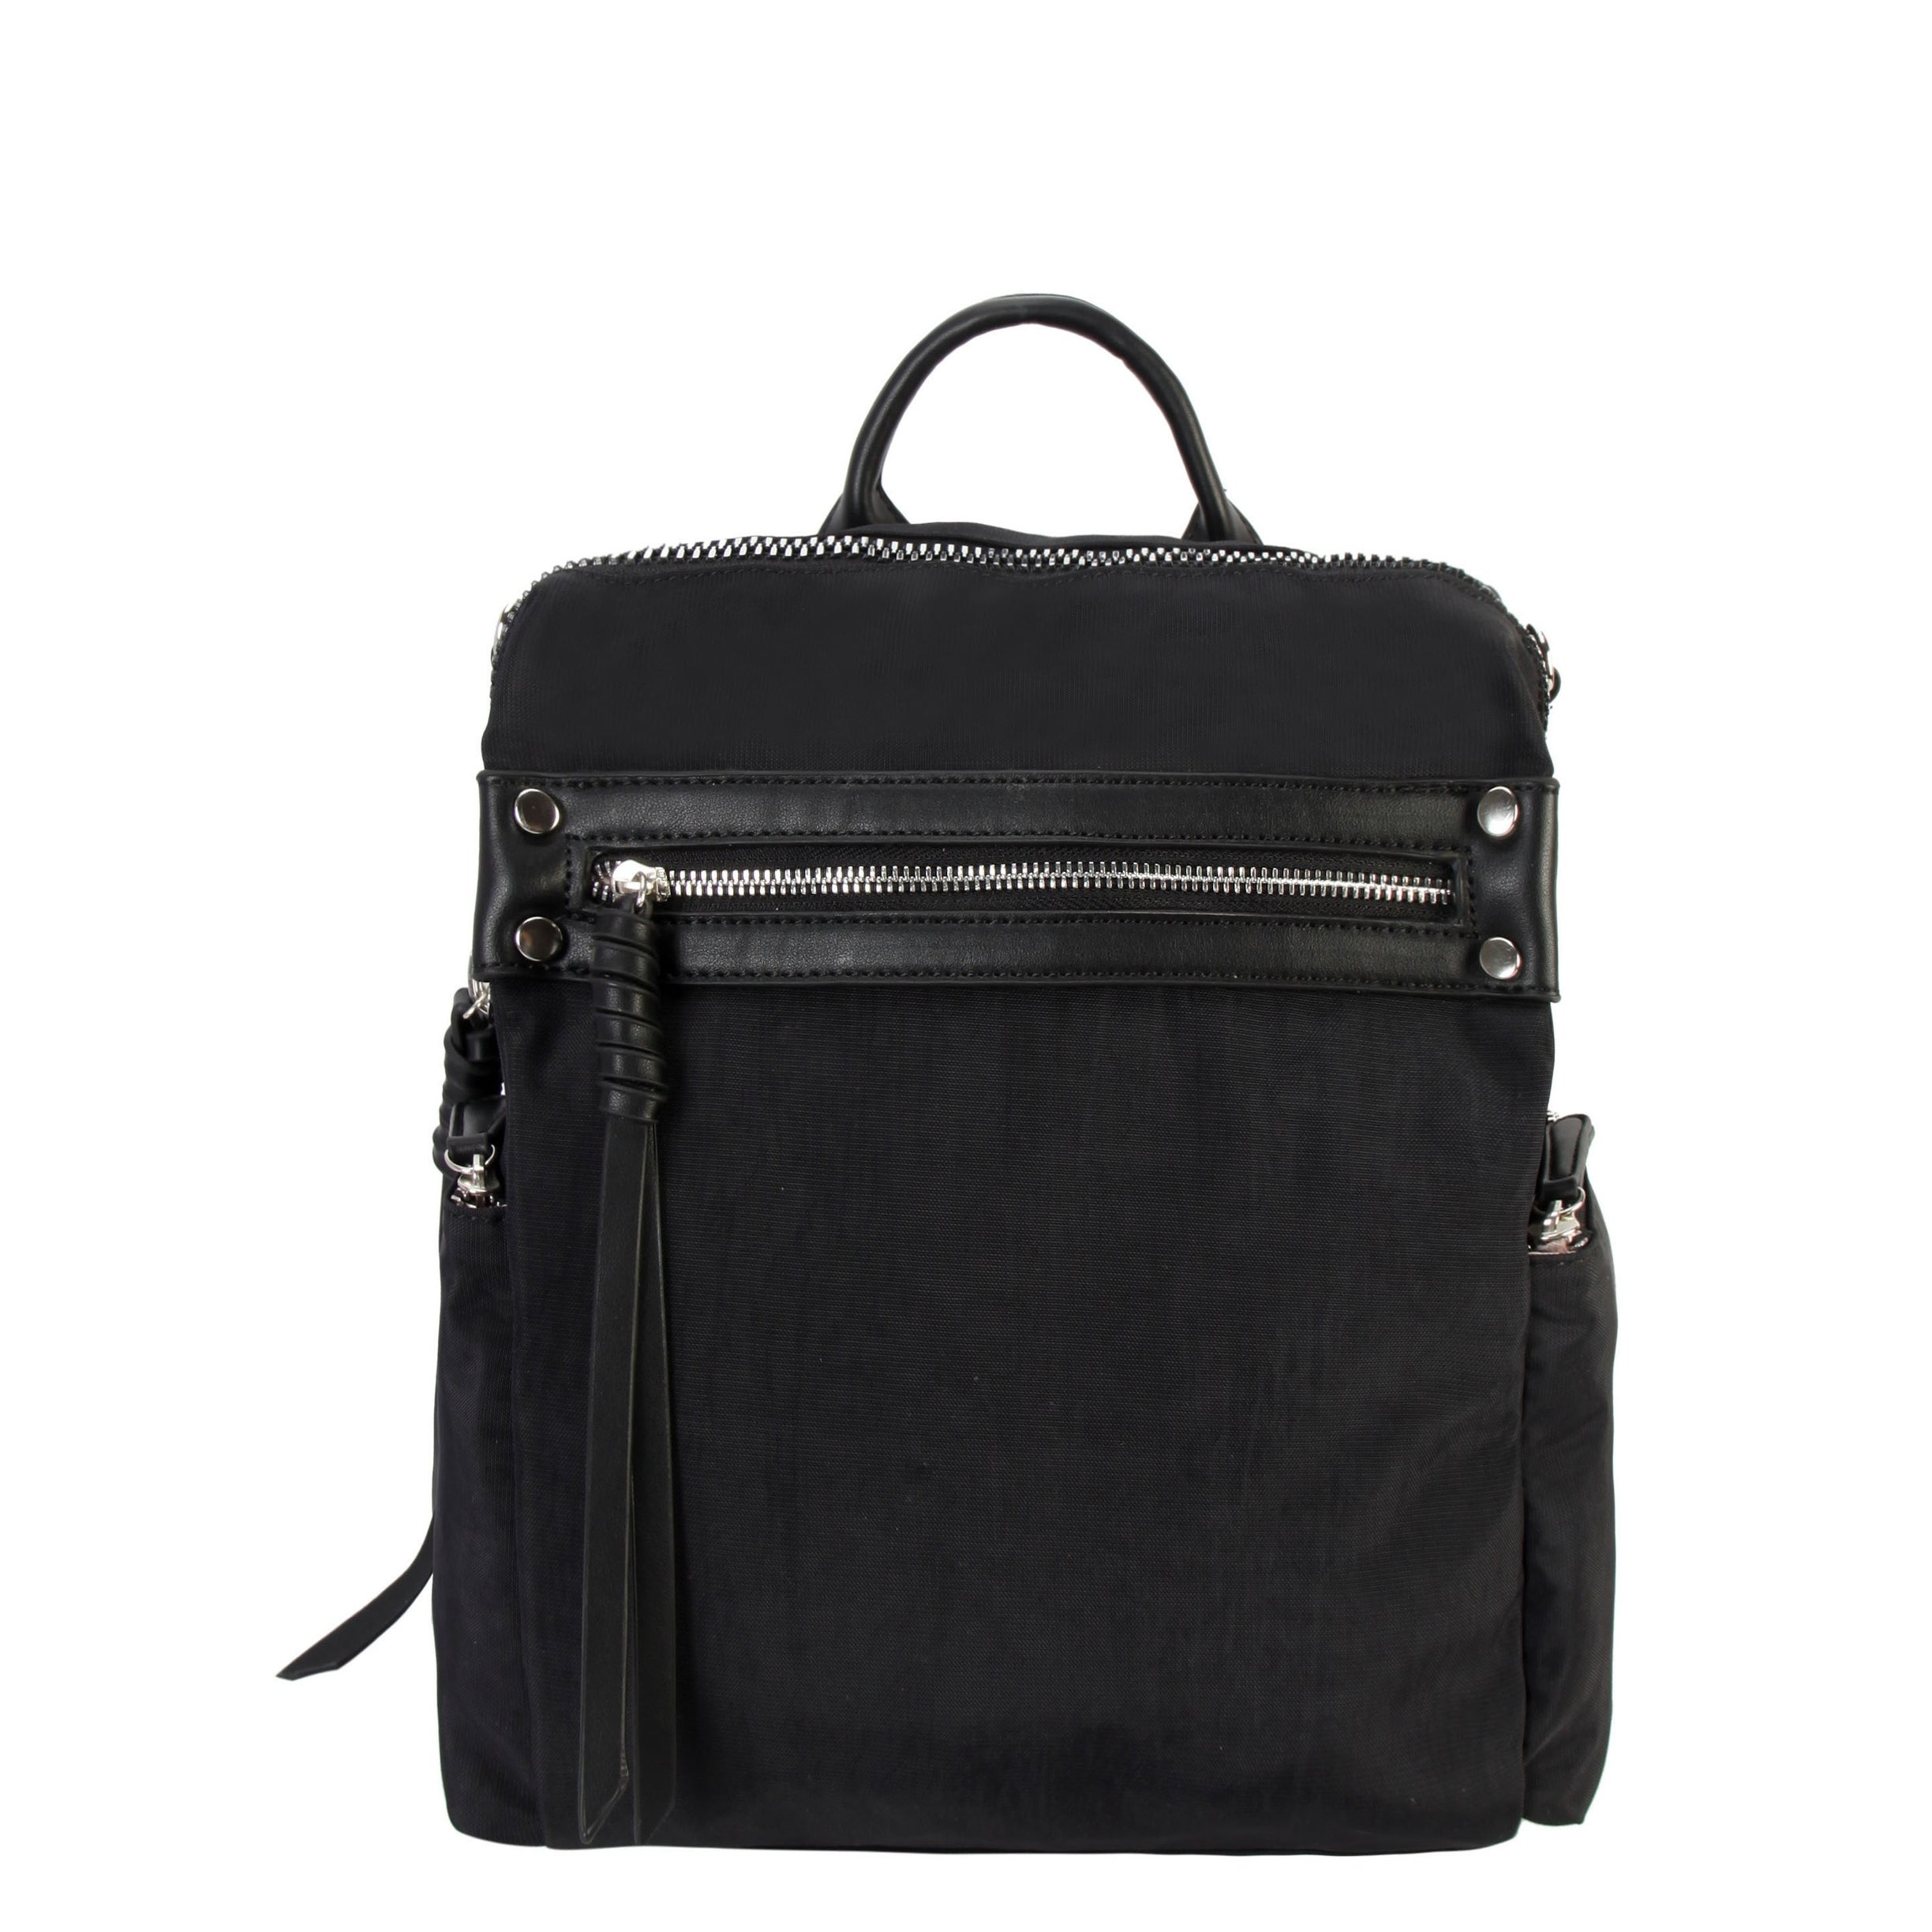 29344caee705 Shop Diophy Fashion Two Ways Use Lightweight Backpack - On Sale - Free  Shipping On Orders Over  45 - Overstock - 19998830